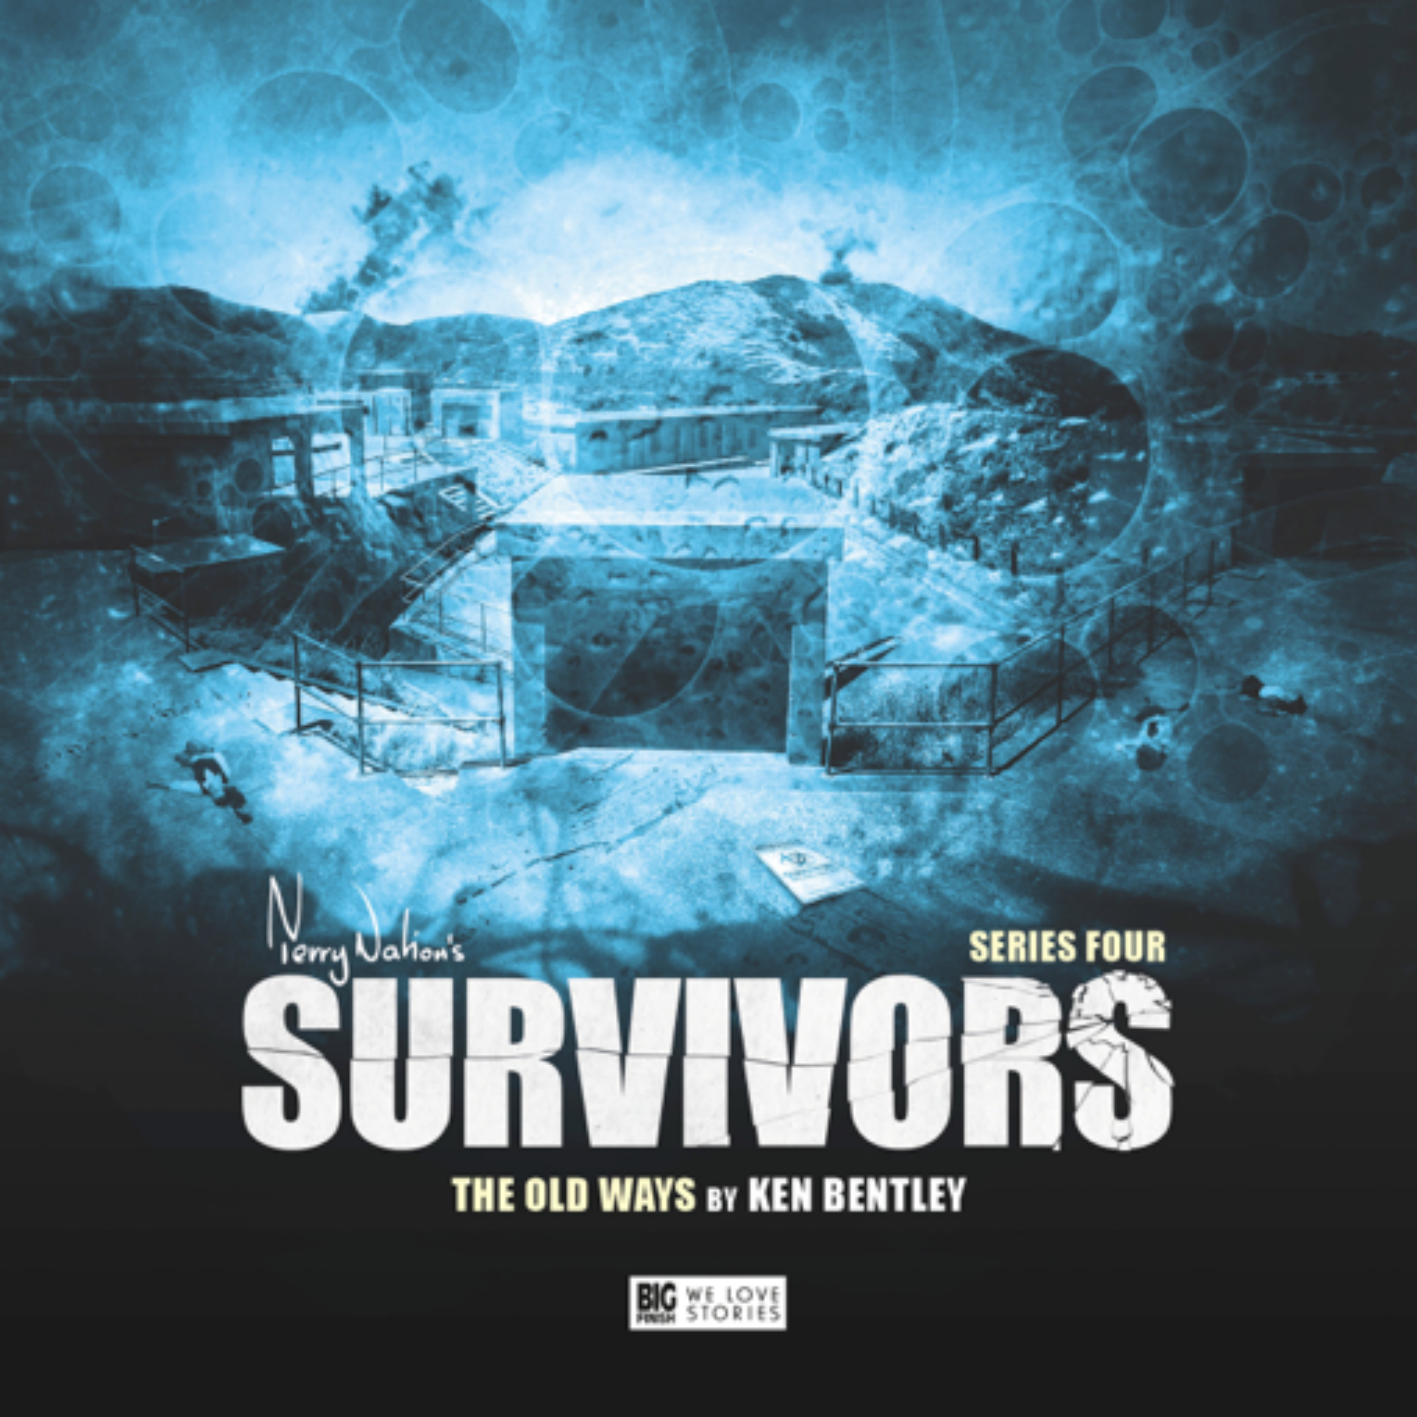 Episode image for Survivors 4:1 The Old Ways